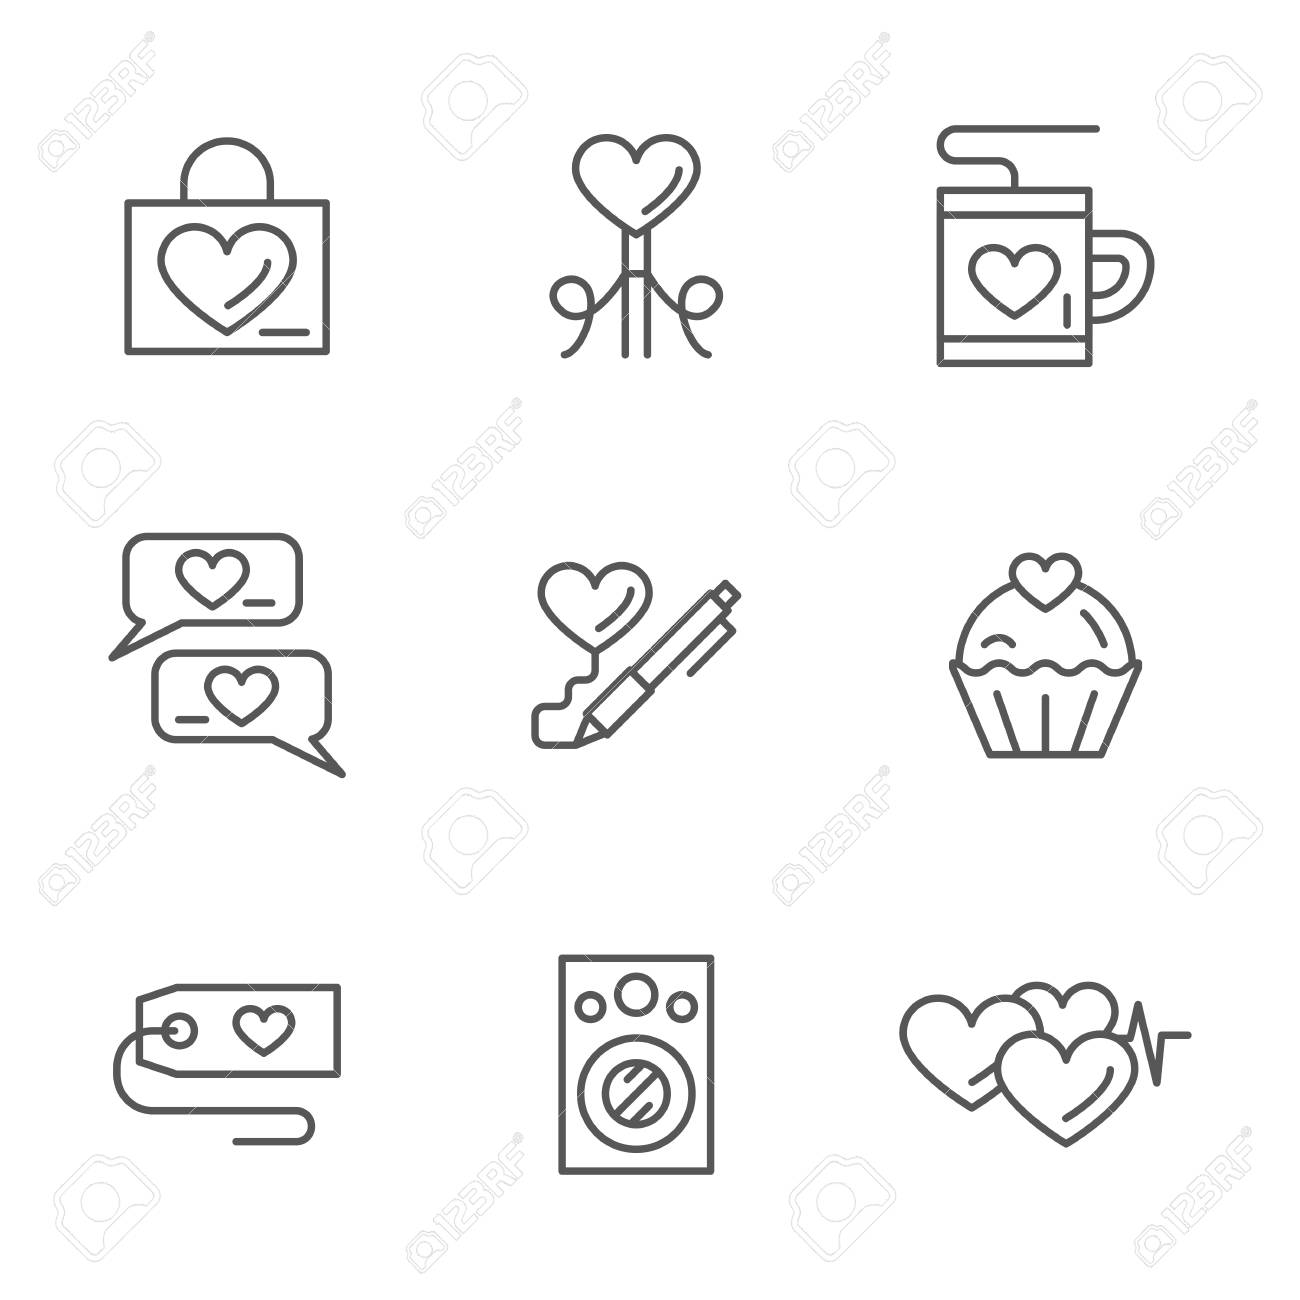 Love Using Symbols Clipart Library